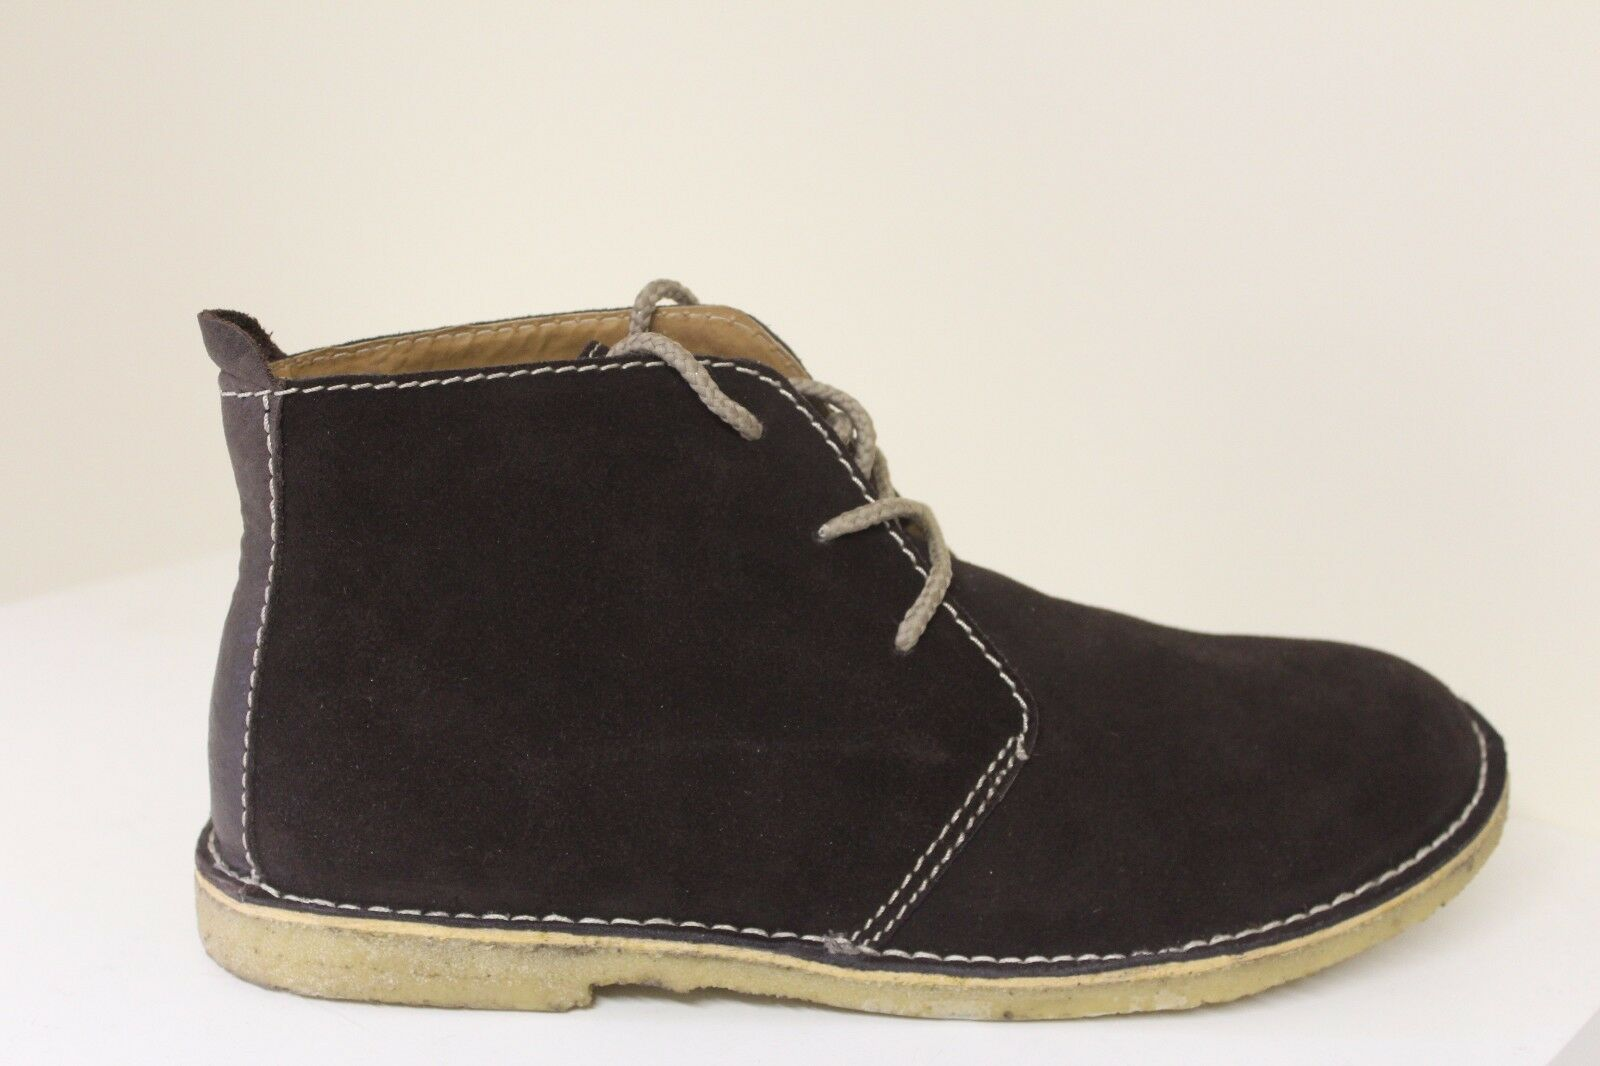 Lyle /& Scott Mens suede desert ankle boots lace up brand new in box B GRADE